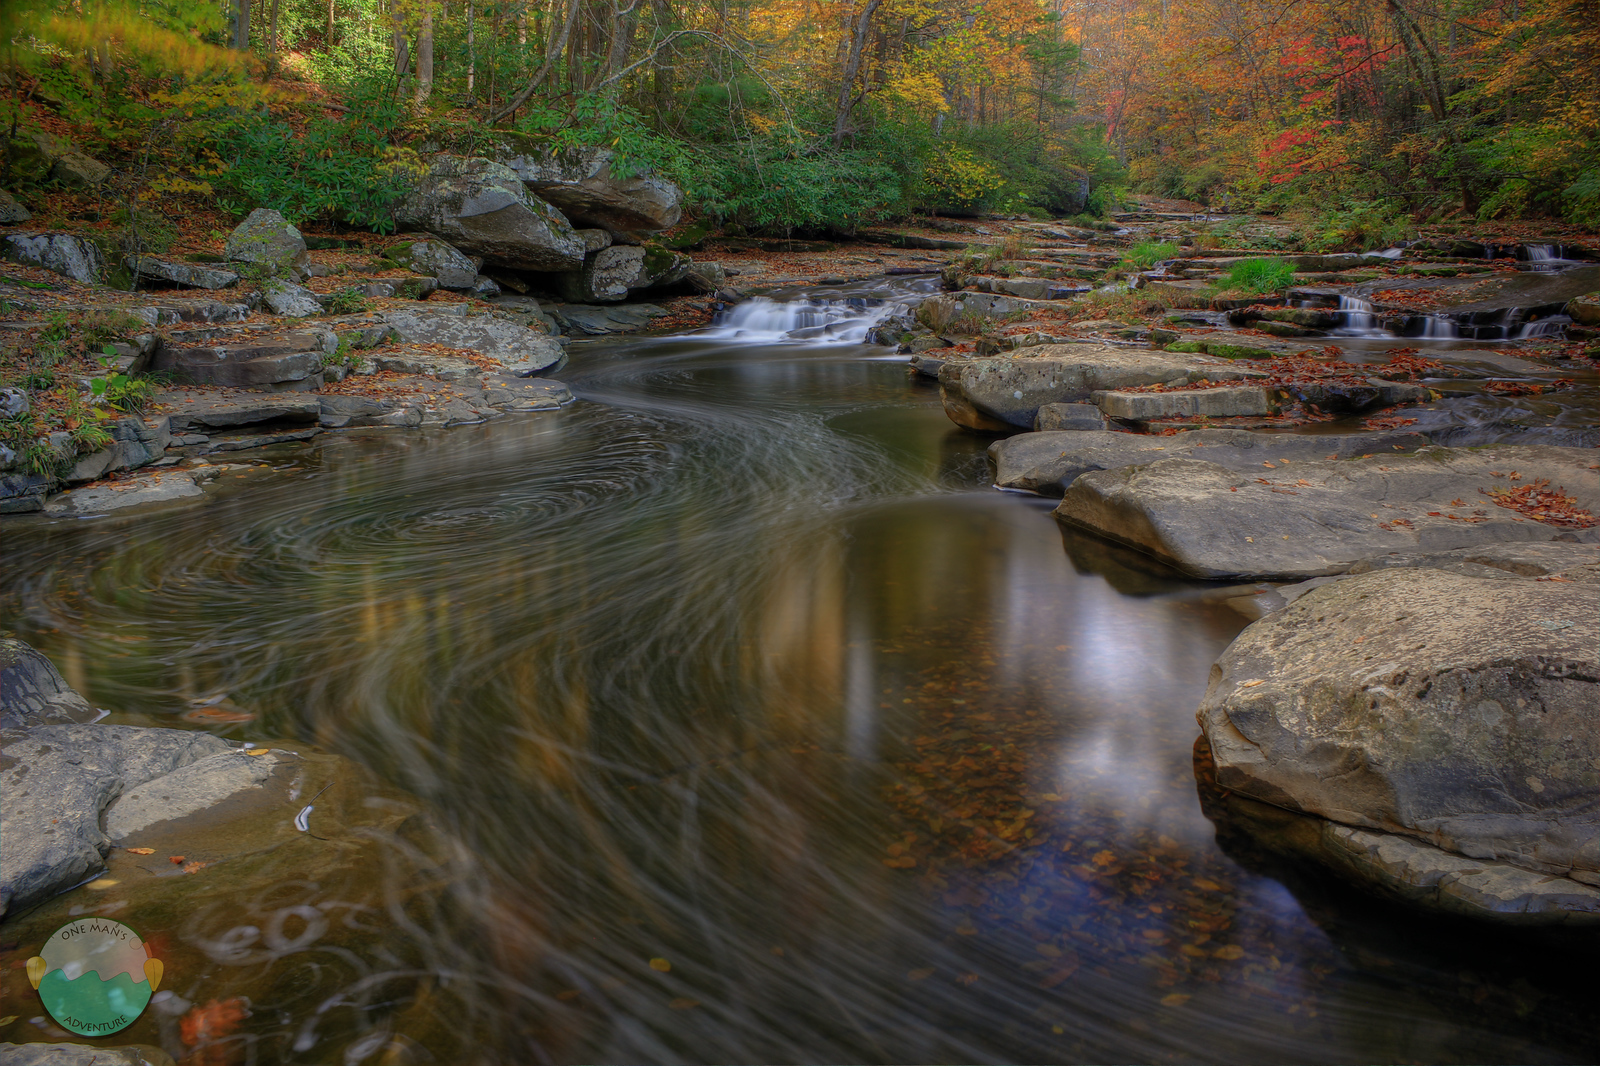 Brush Creek<br /> A view of autumn along Brush Creek in the New River Gorge Area of West Virginia.